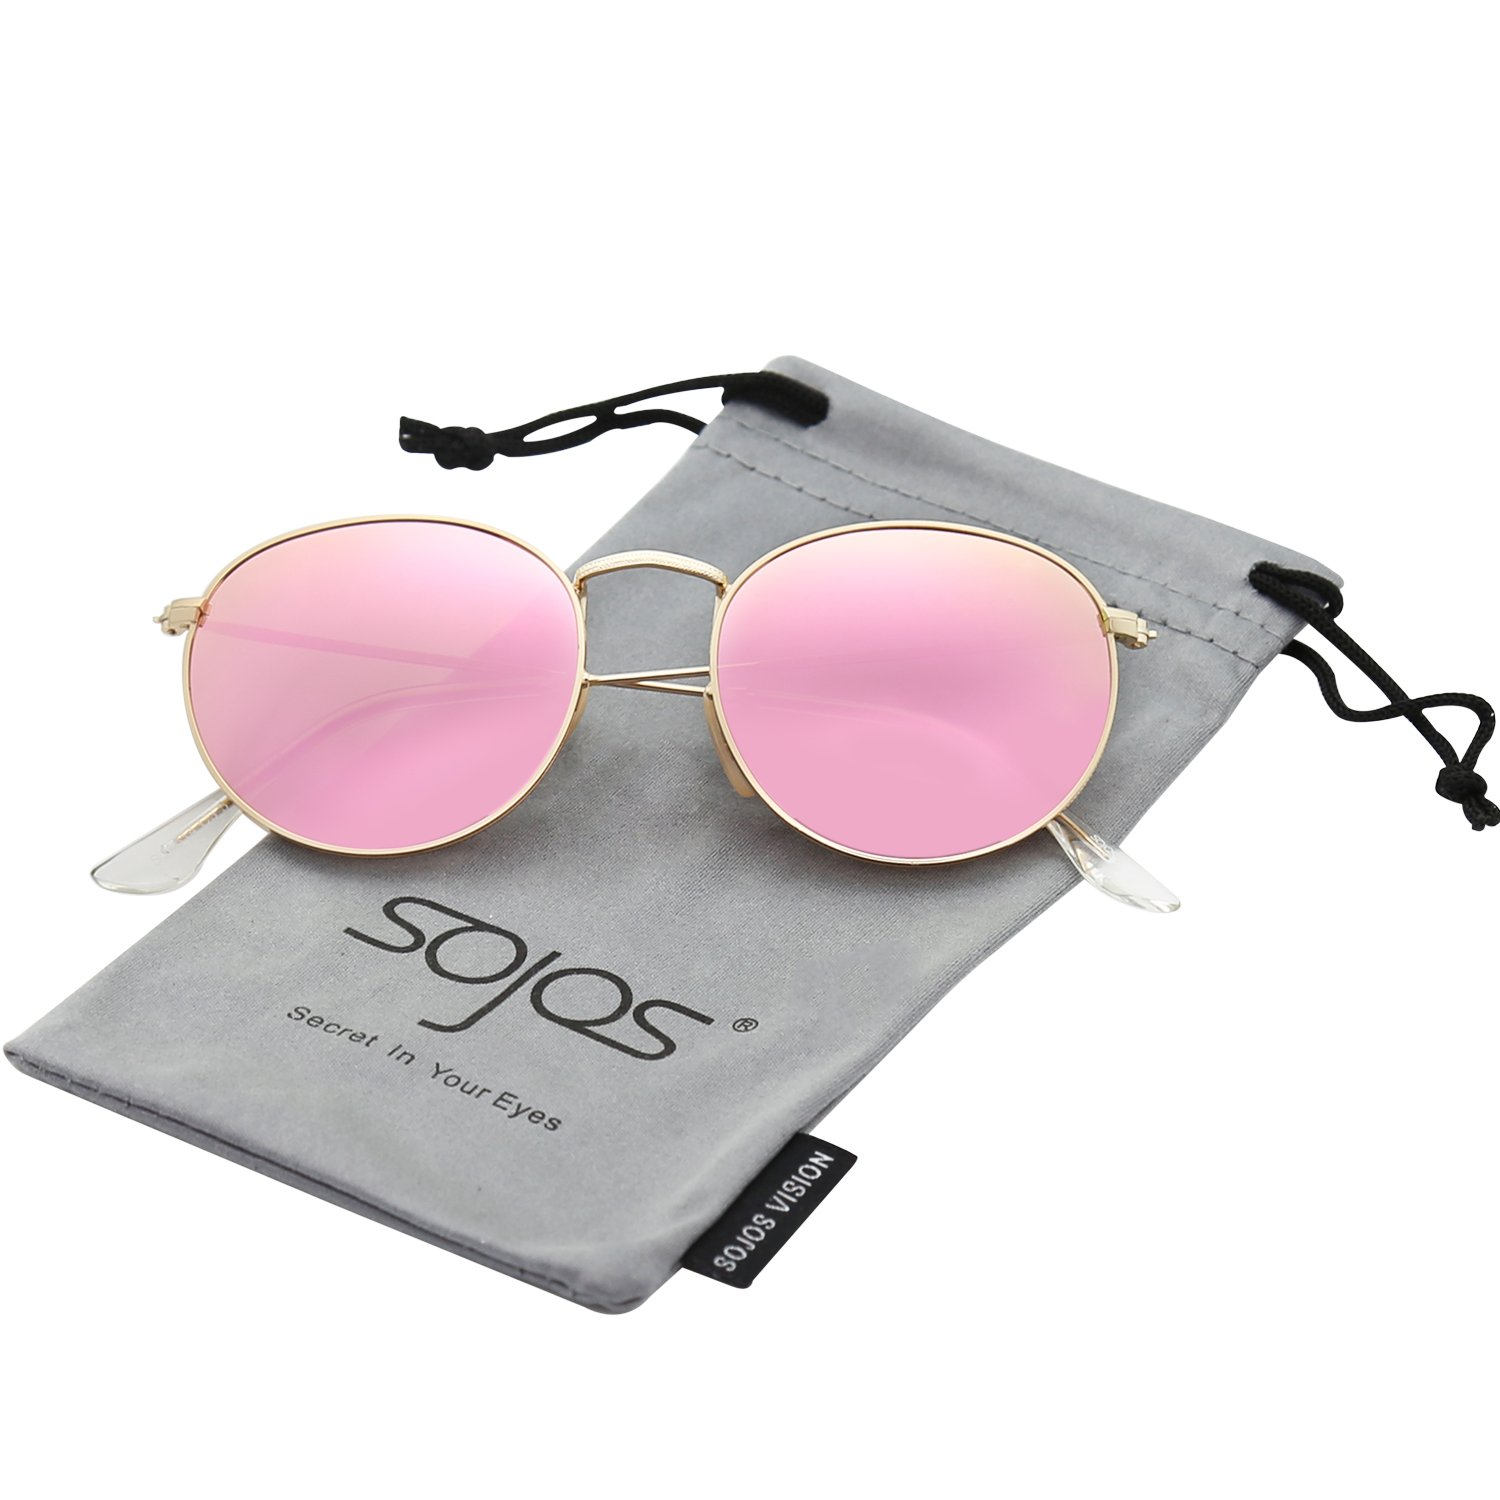 SOJOS Small Round Polarized Sunglasses Mirrored Lens Unisex Glasses SJ1014 3447 with Gold Frame/Pink Mirrored Lens